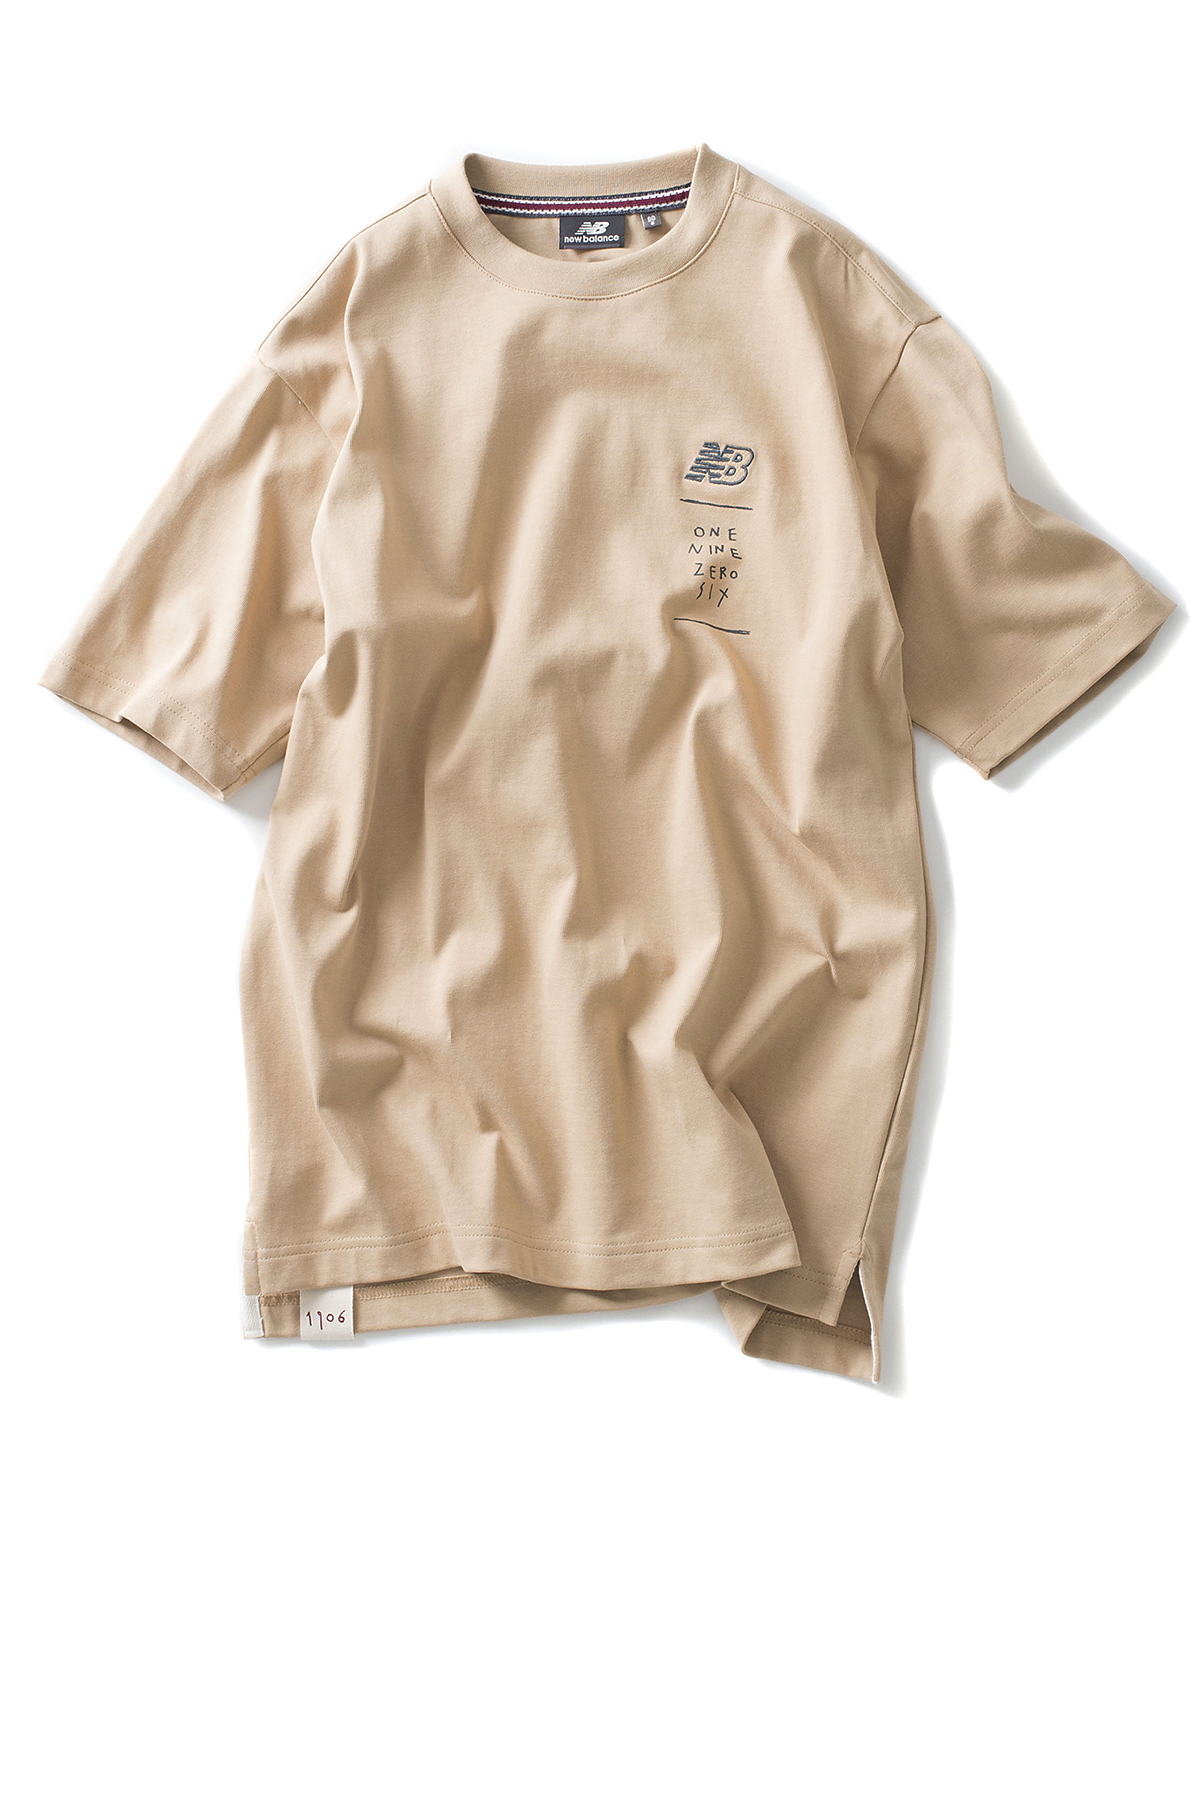 New Balance : UNI Drawing Pack Shoes In Square Tee (Beige)